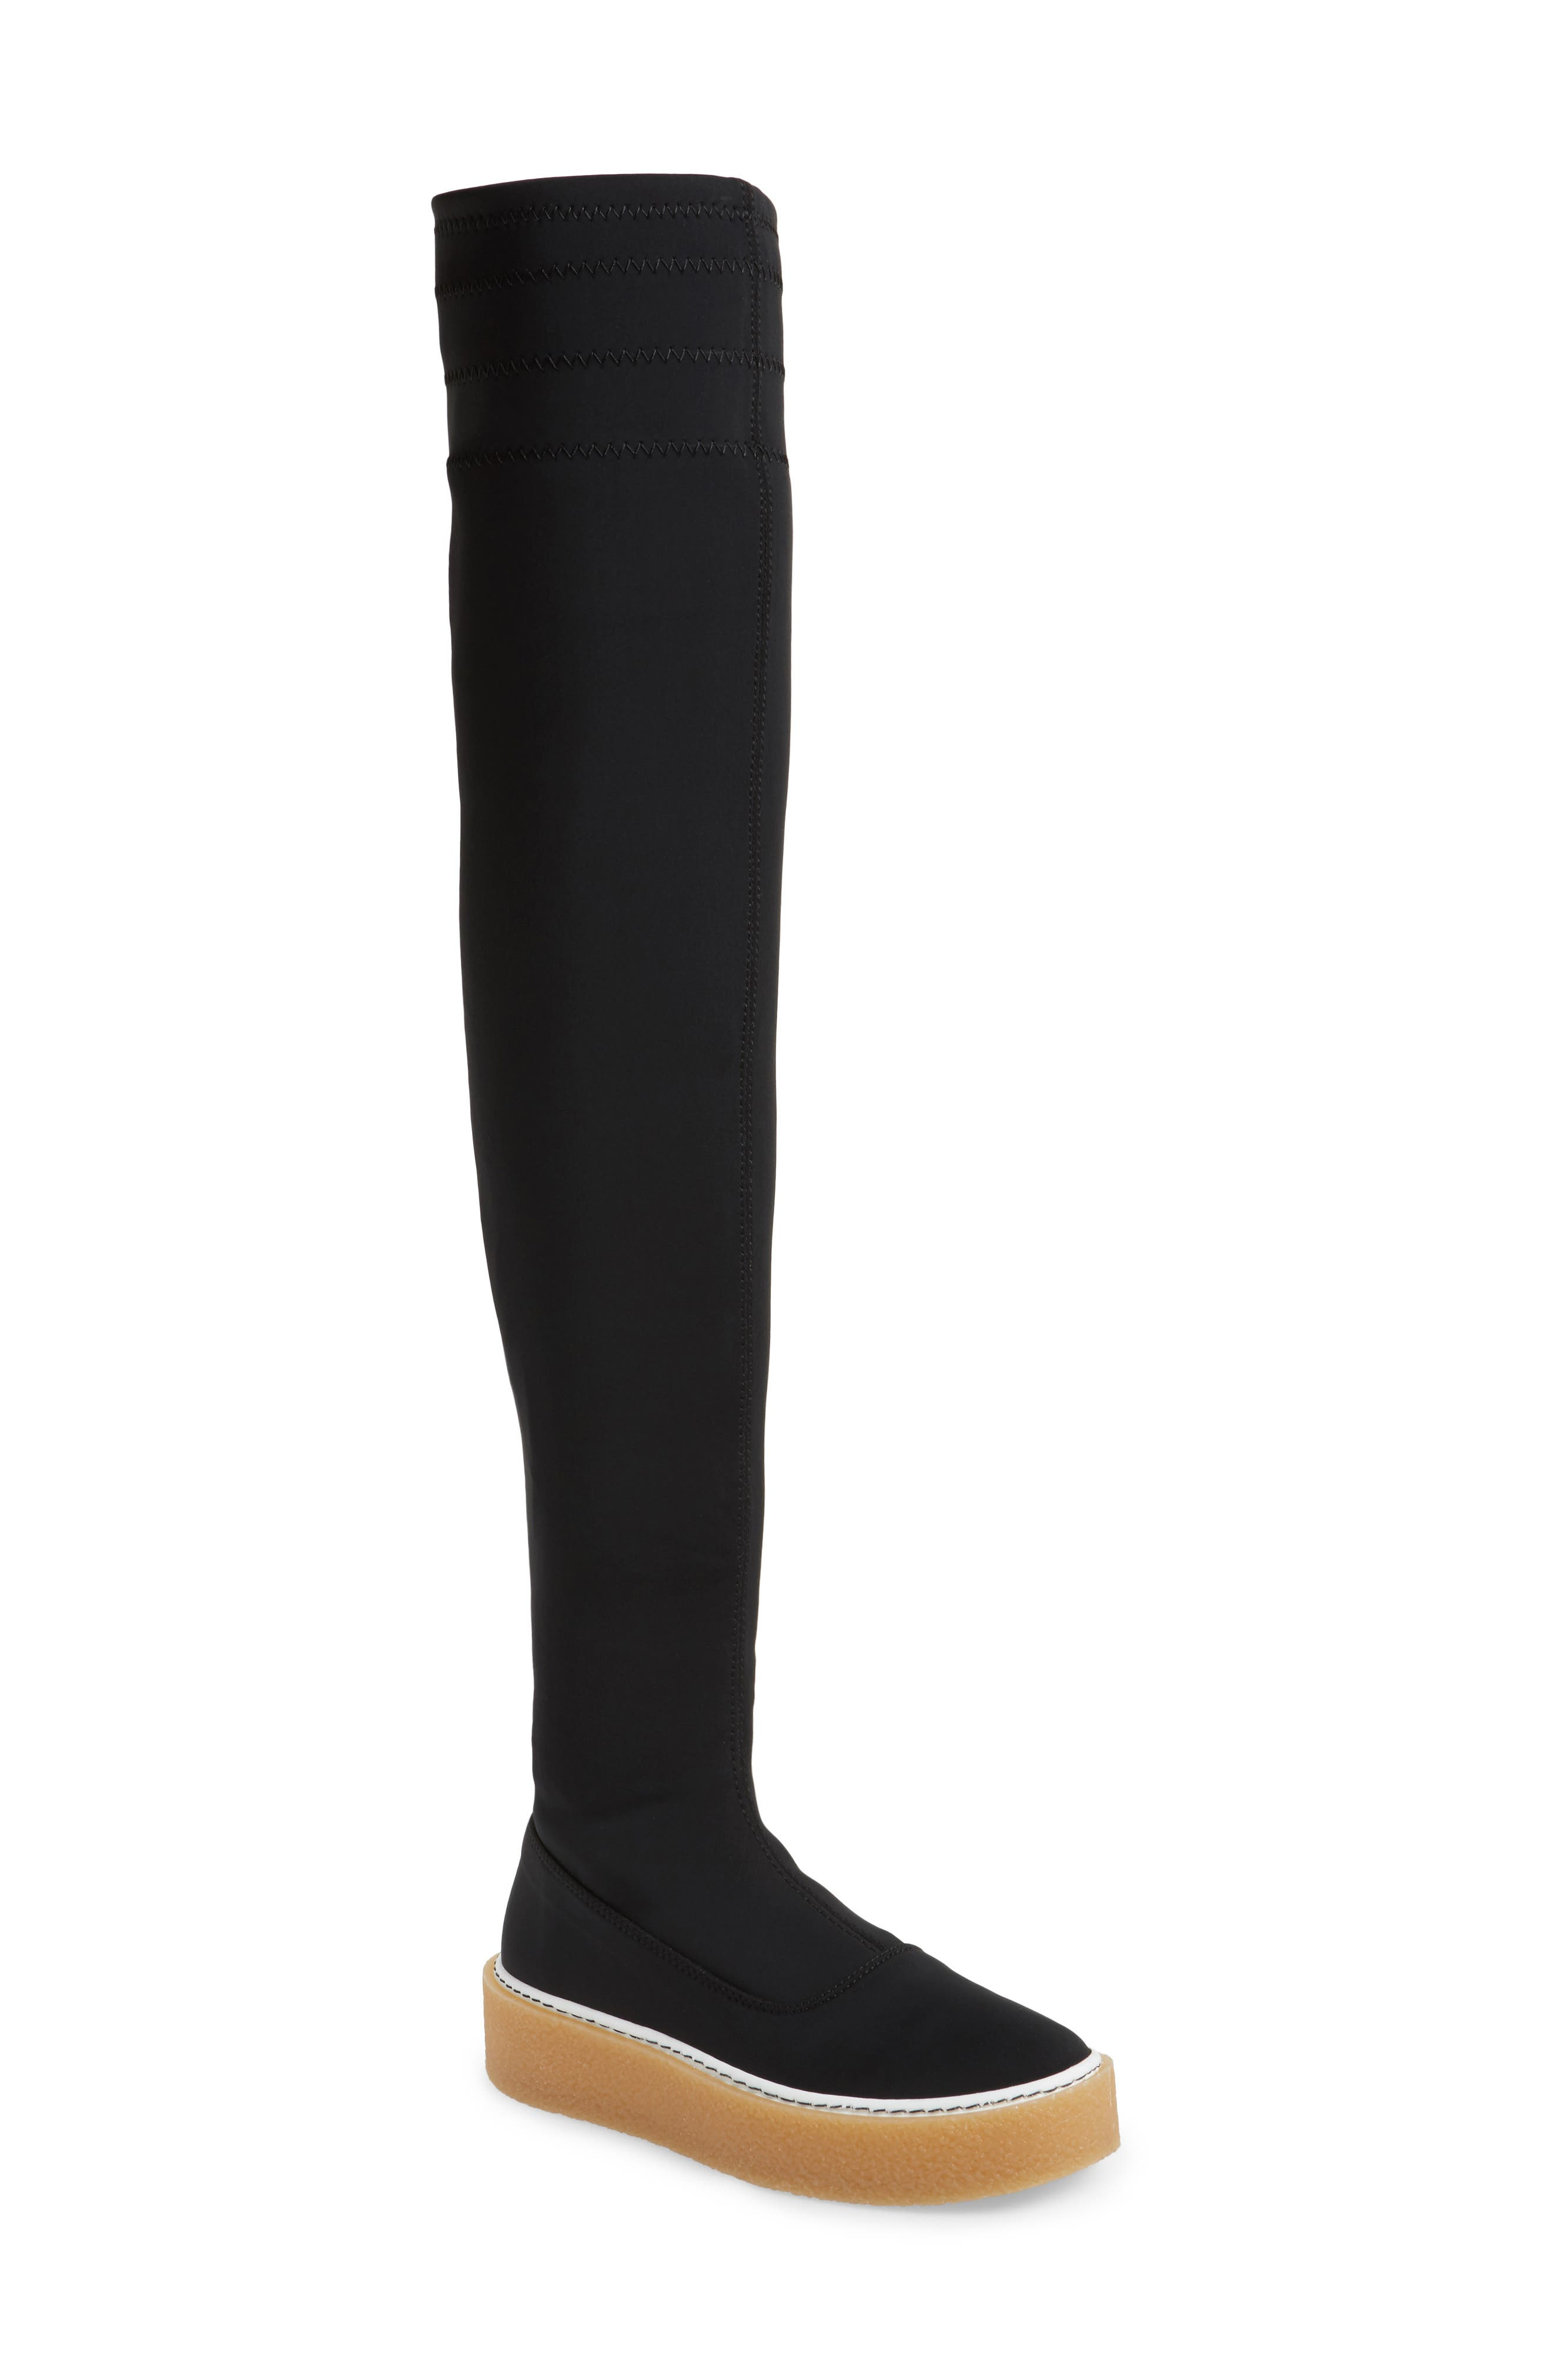 Outer Limits Thigh High Boot,                         Main,                         color, 001